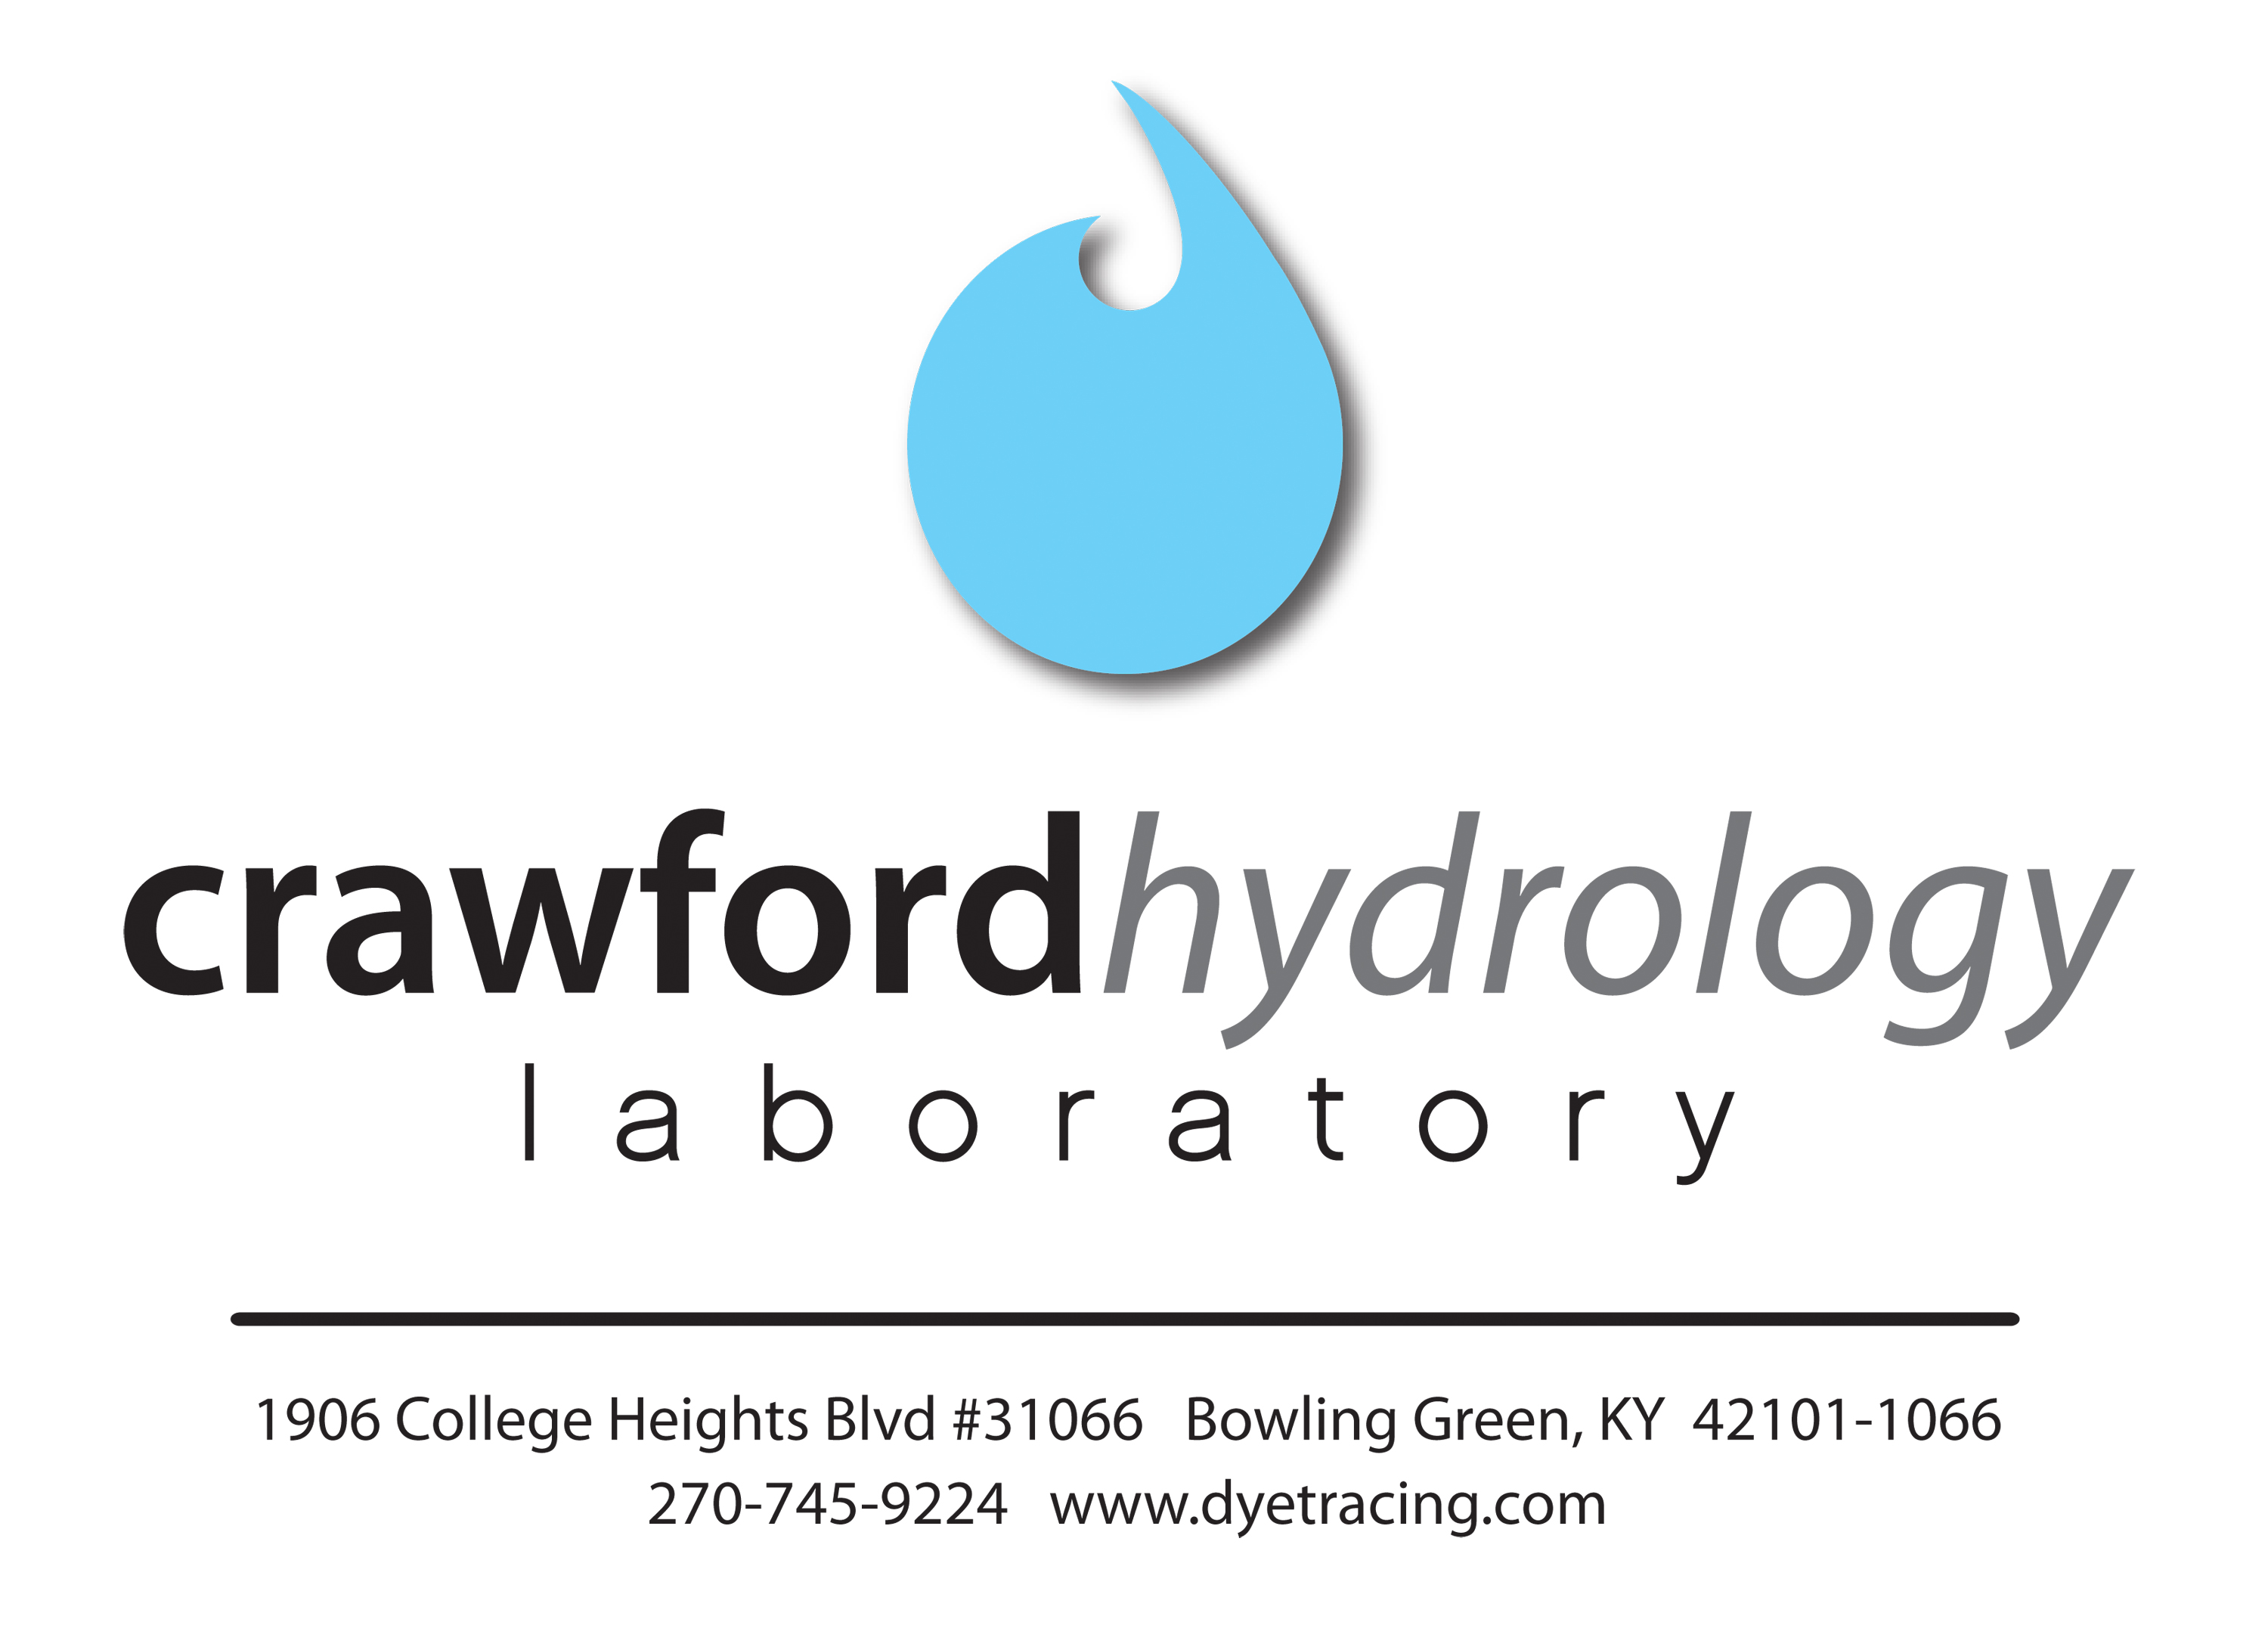 Crawford Hydrology Laboratory